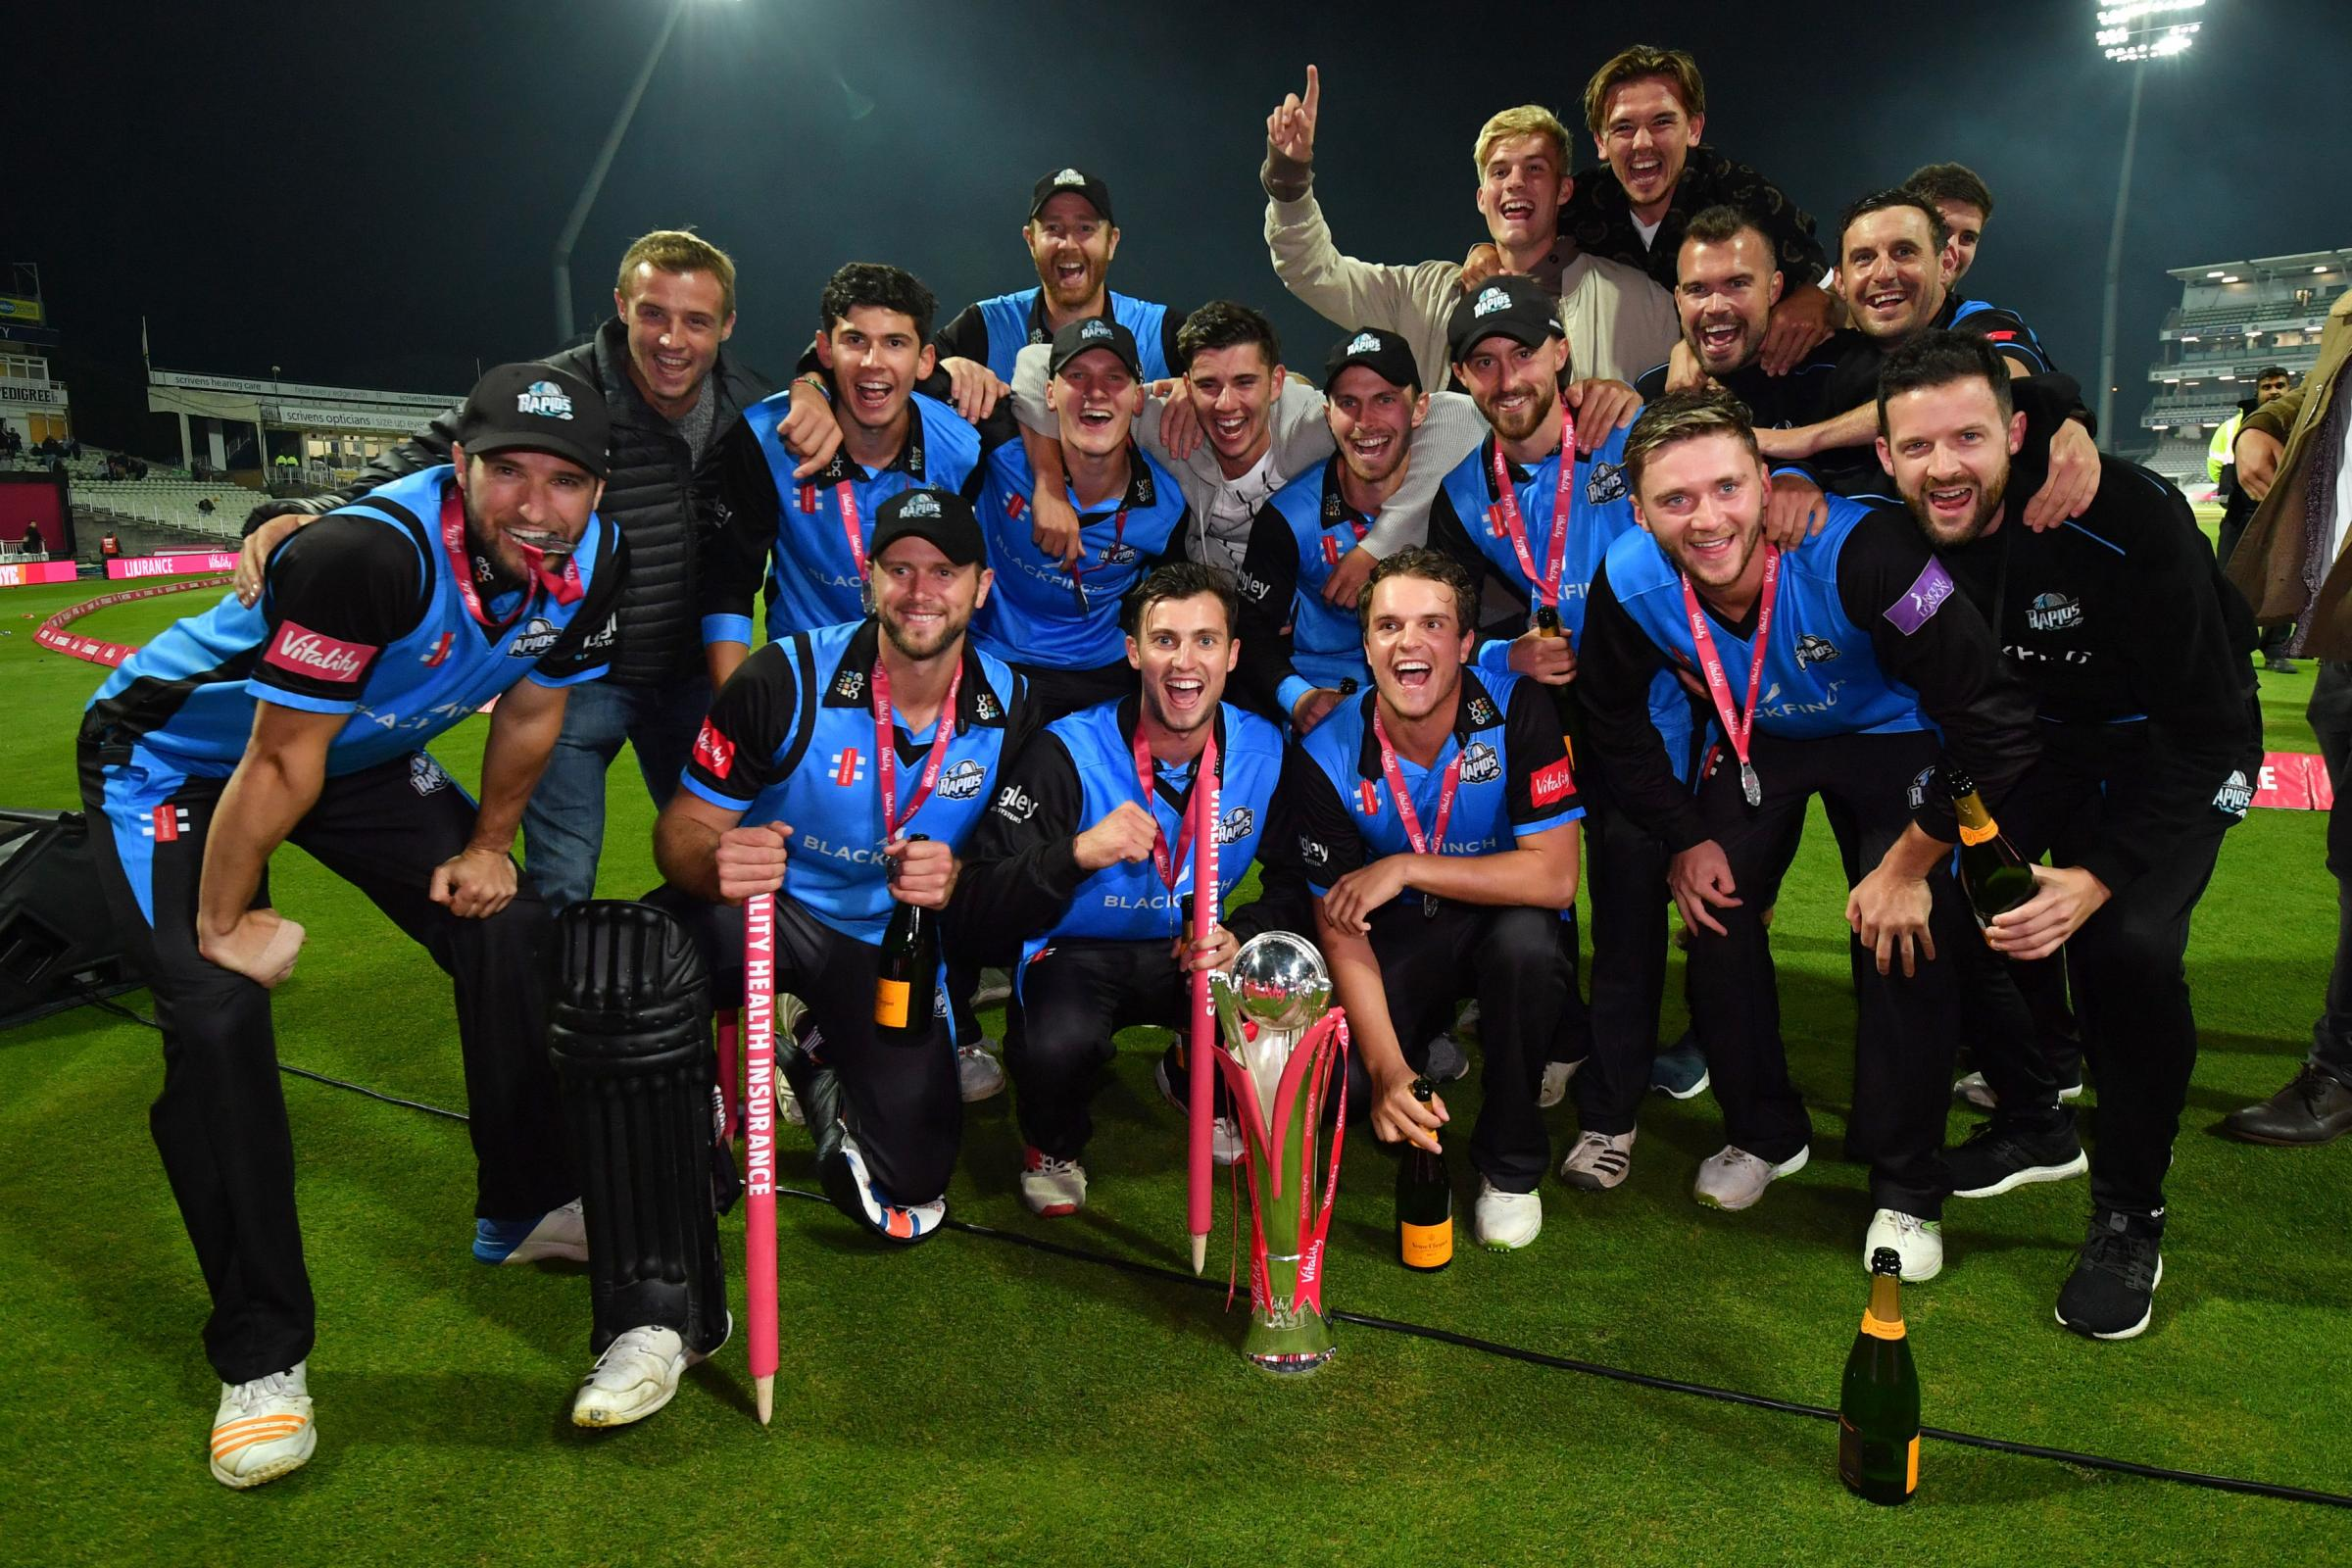 Worcestershire Rapids celebrates as they lift the trophy during the Vitality T20 Blast Final on Finals Day at Edgbaston, Birmingham. PRESS ASSOCIATION Photo. Picture date: Saturday September 15, 2018. See PA story CRICKET Blast. Photo cred